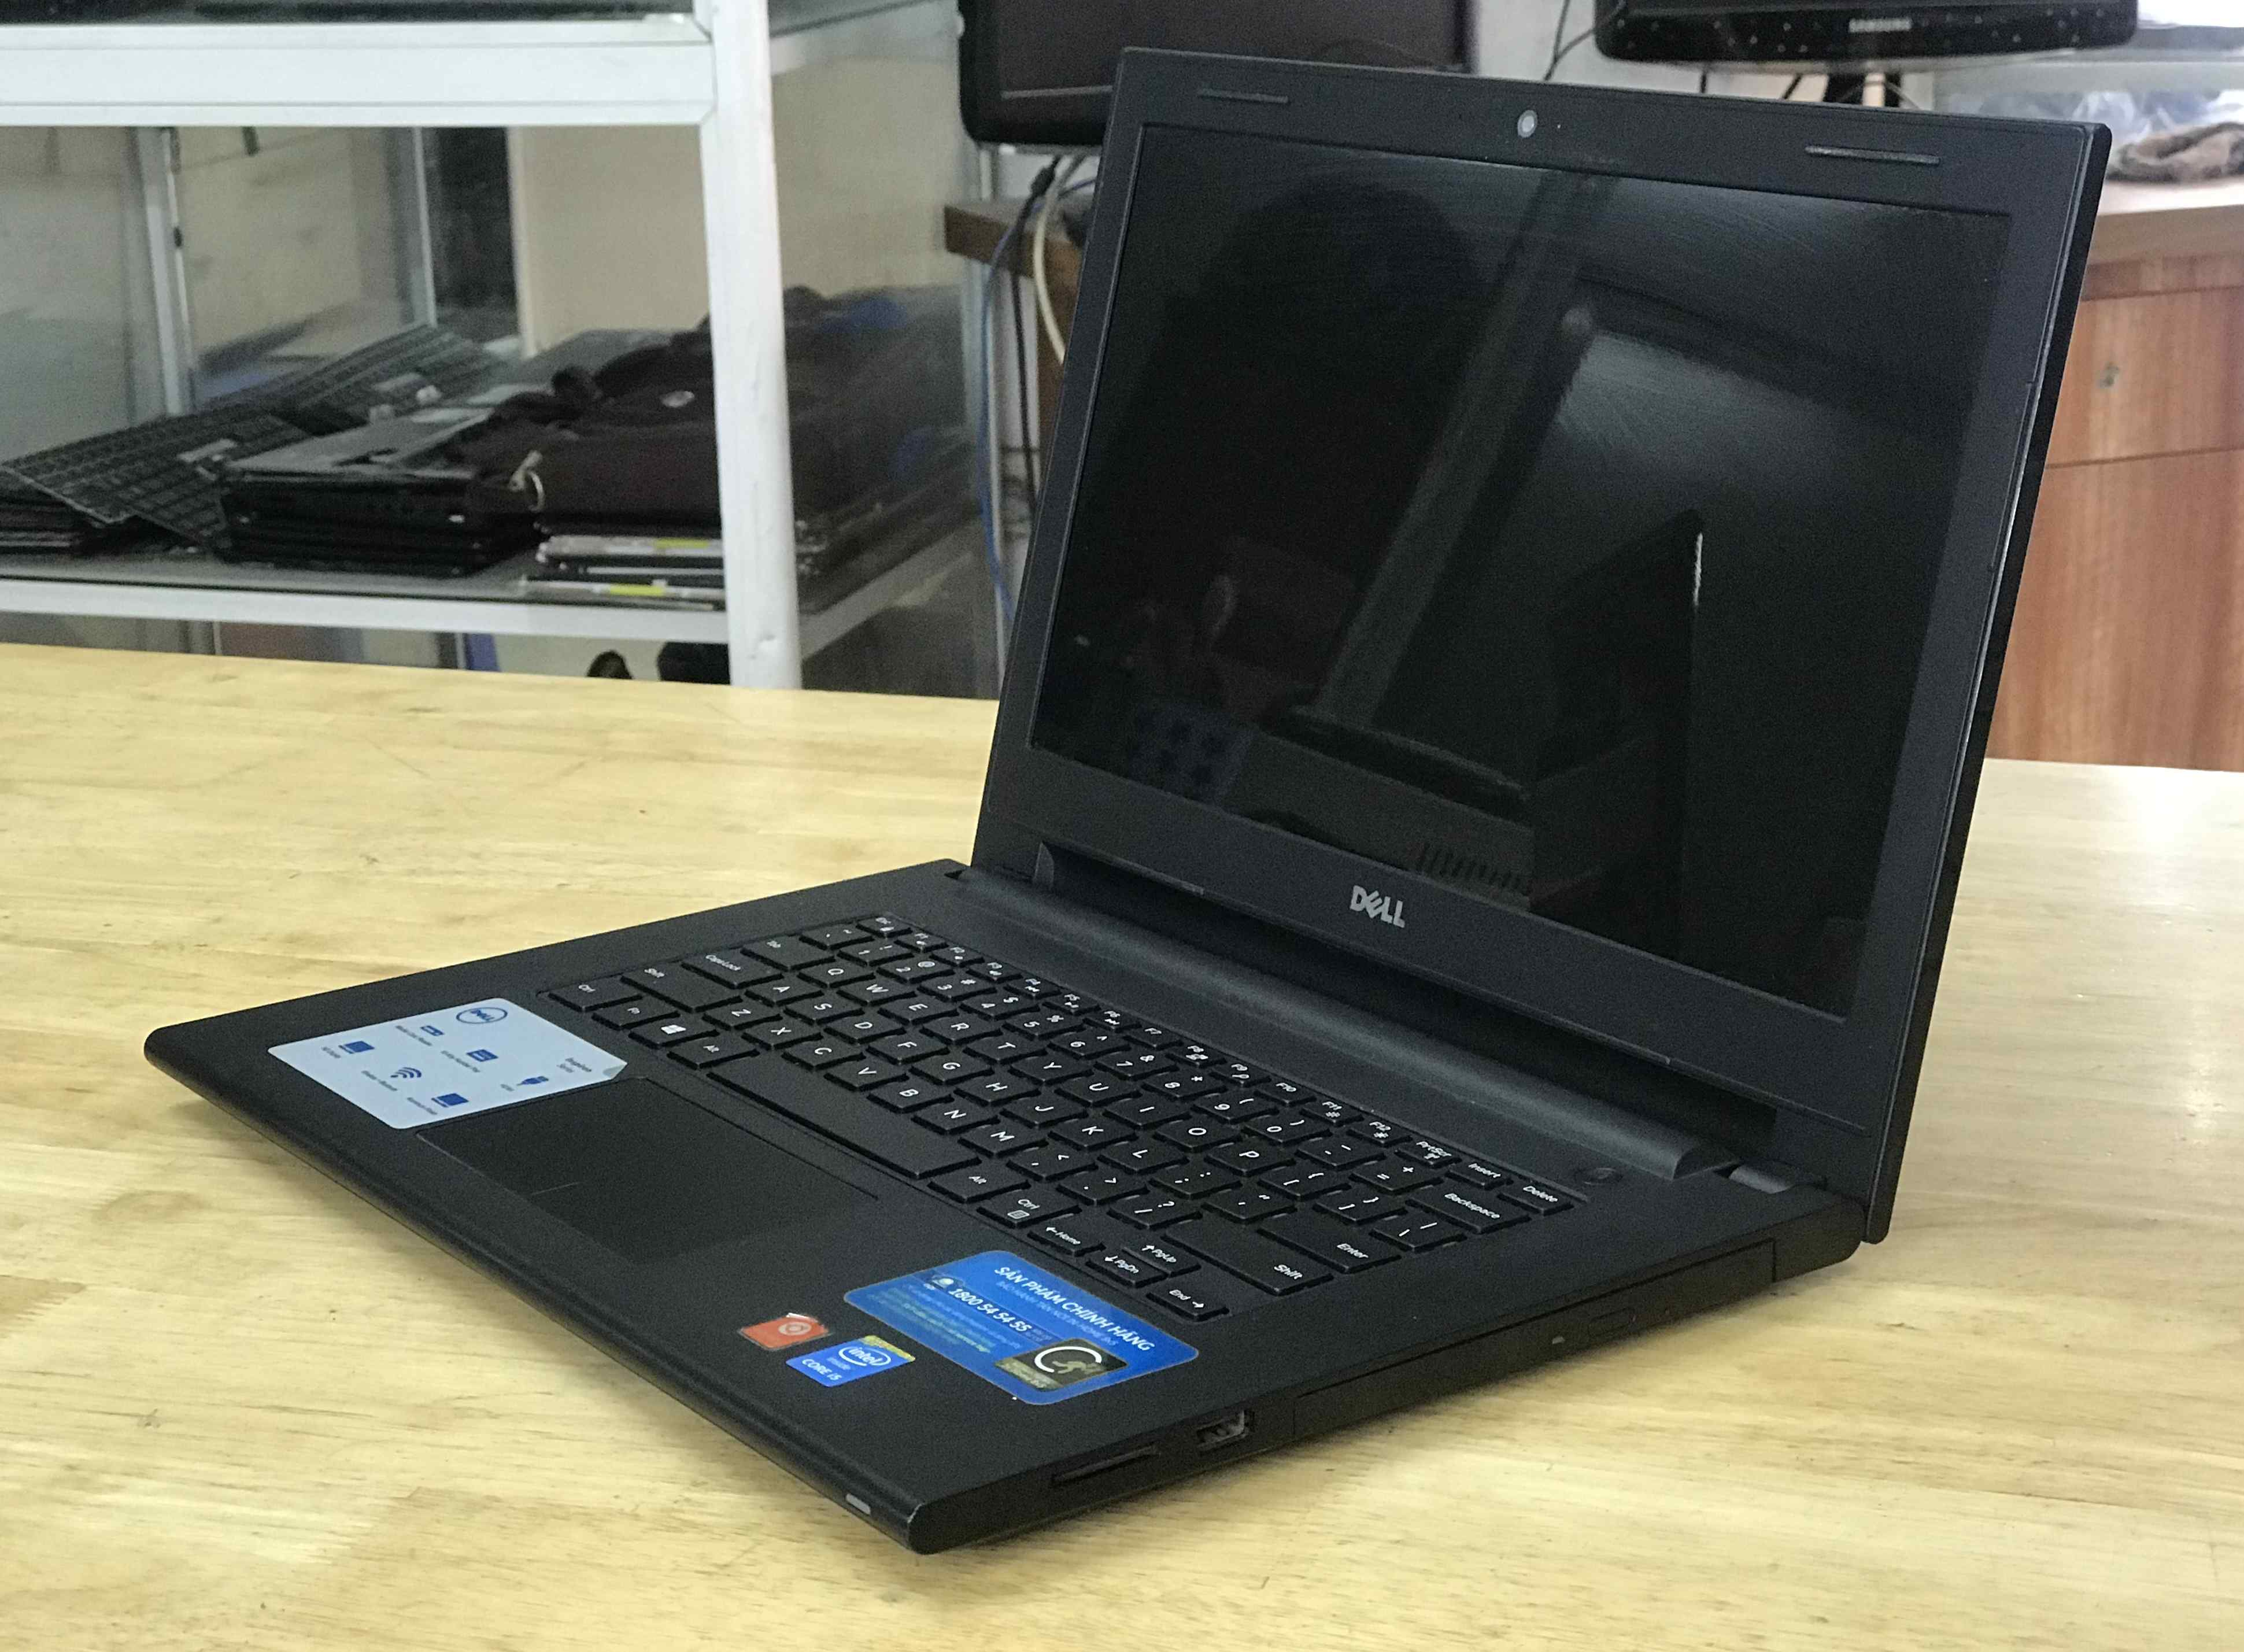 bán laptop dell inspiron 3442 core i3